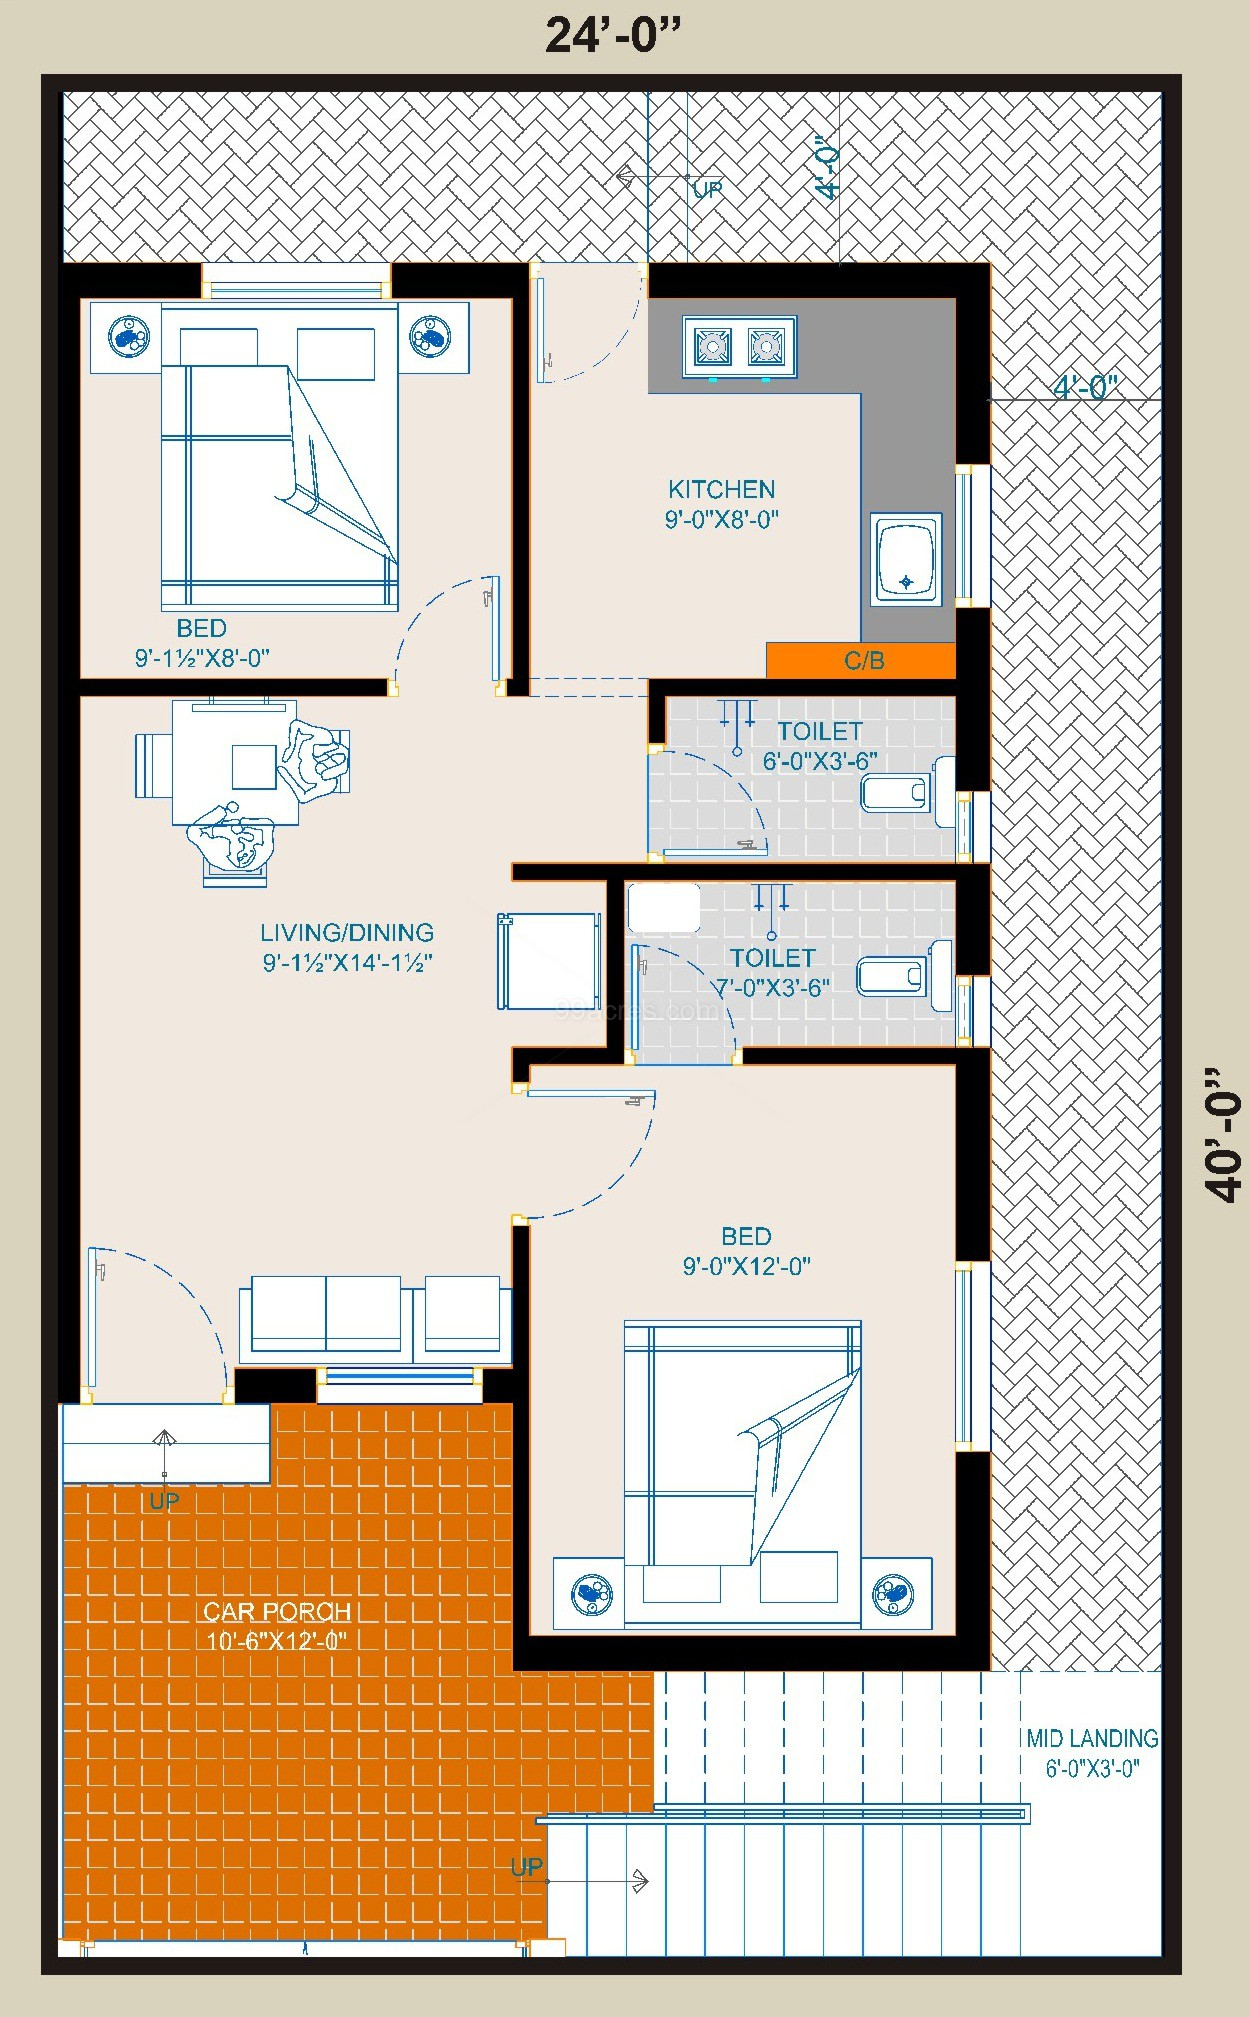 850 Sq Ft House Plans. 850. House Plans With Pictures